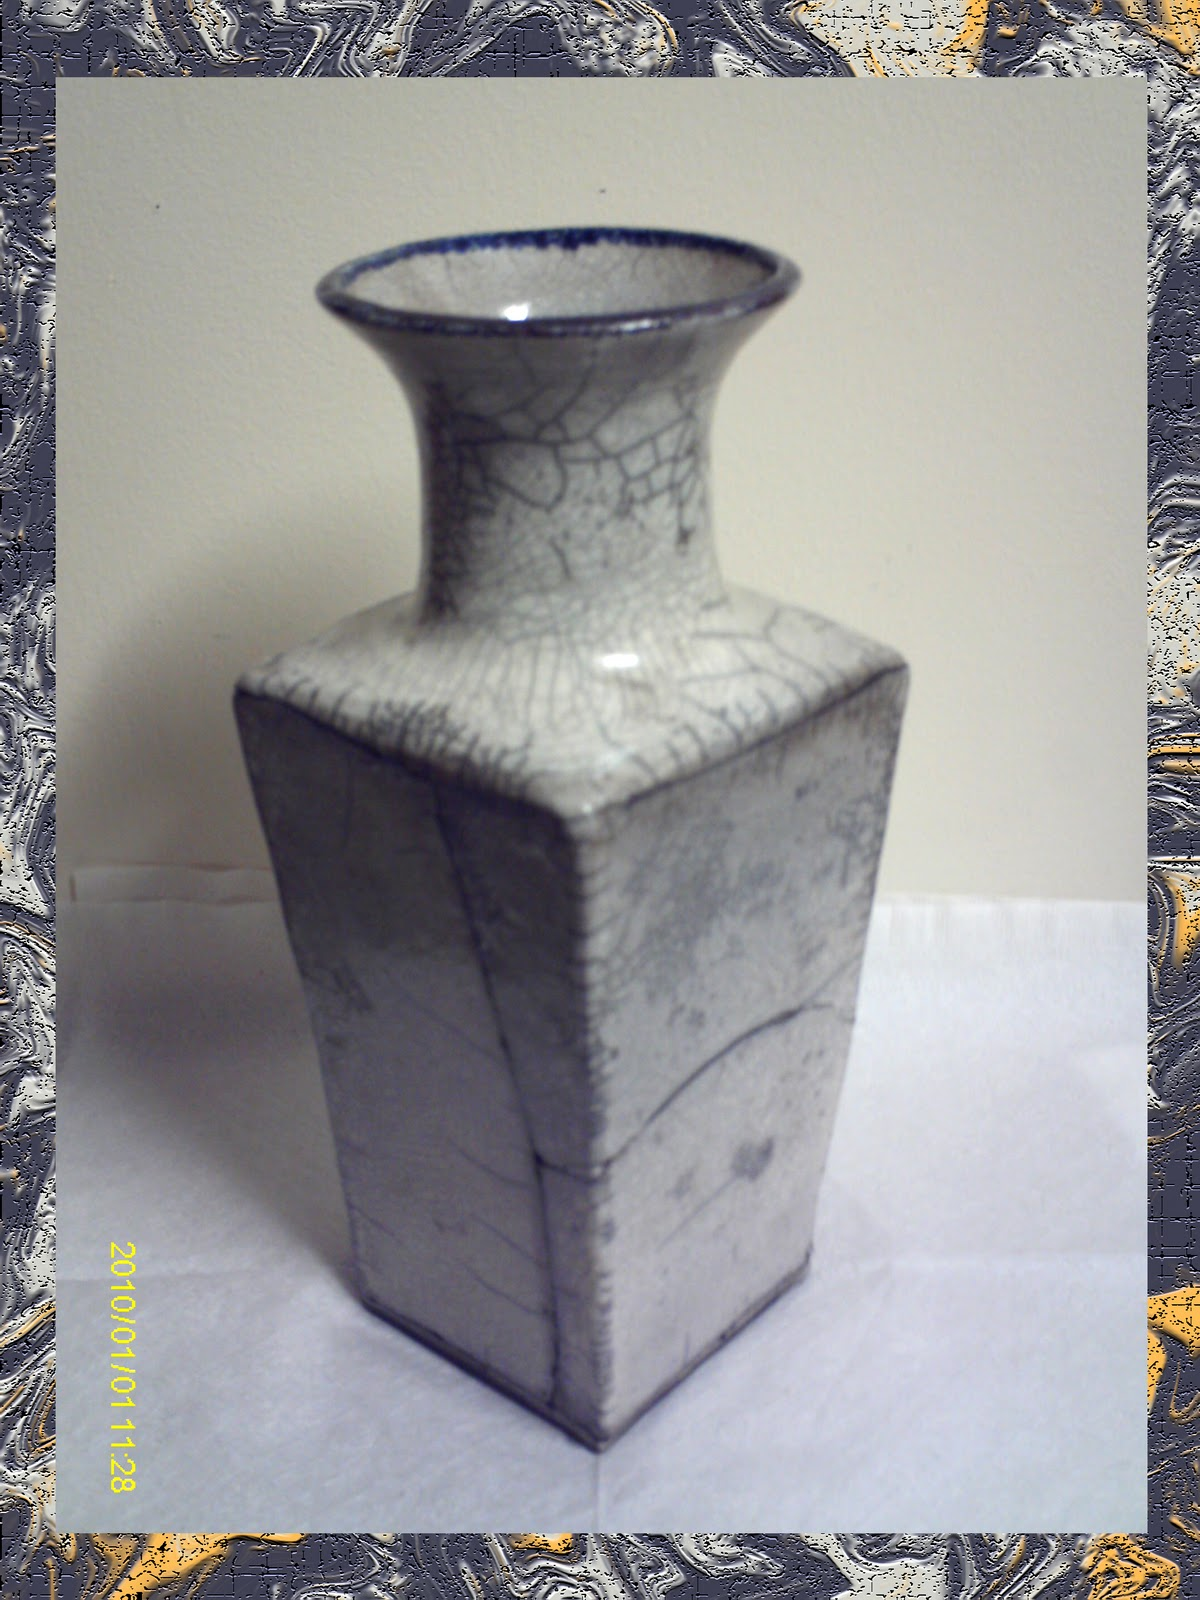 Learning ceramics handbuilding techniques the slab method for my raku piece i decided to make a slab vase as well i first started by cutting out patterens for the individual slabs a long trapezoid for the sides reviewsmspy